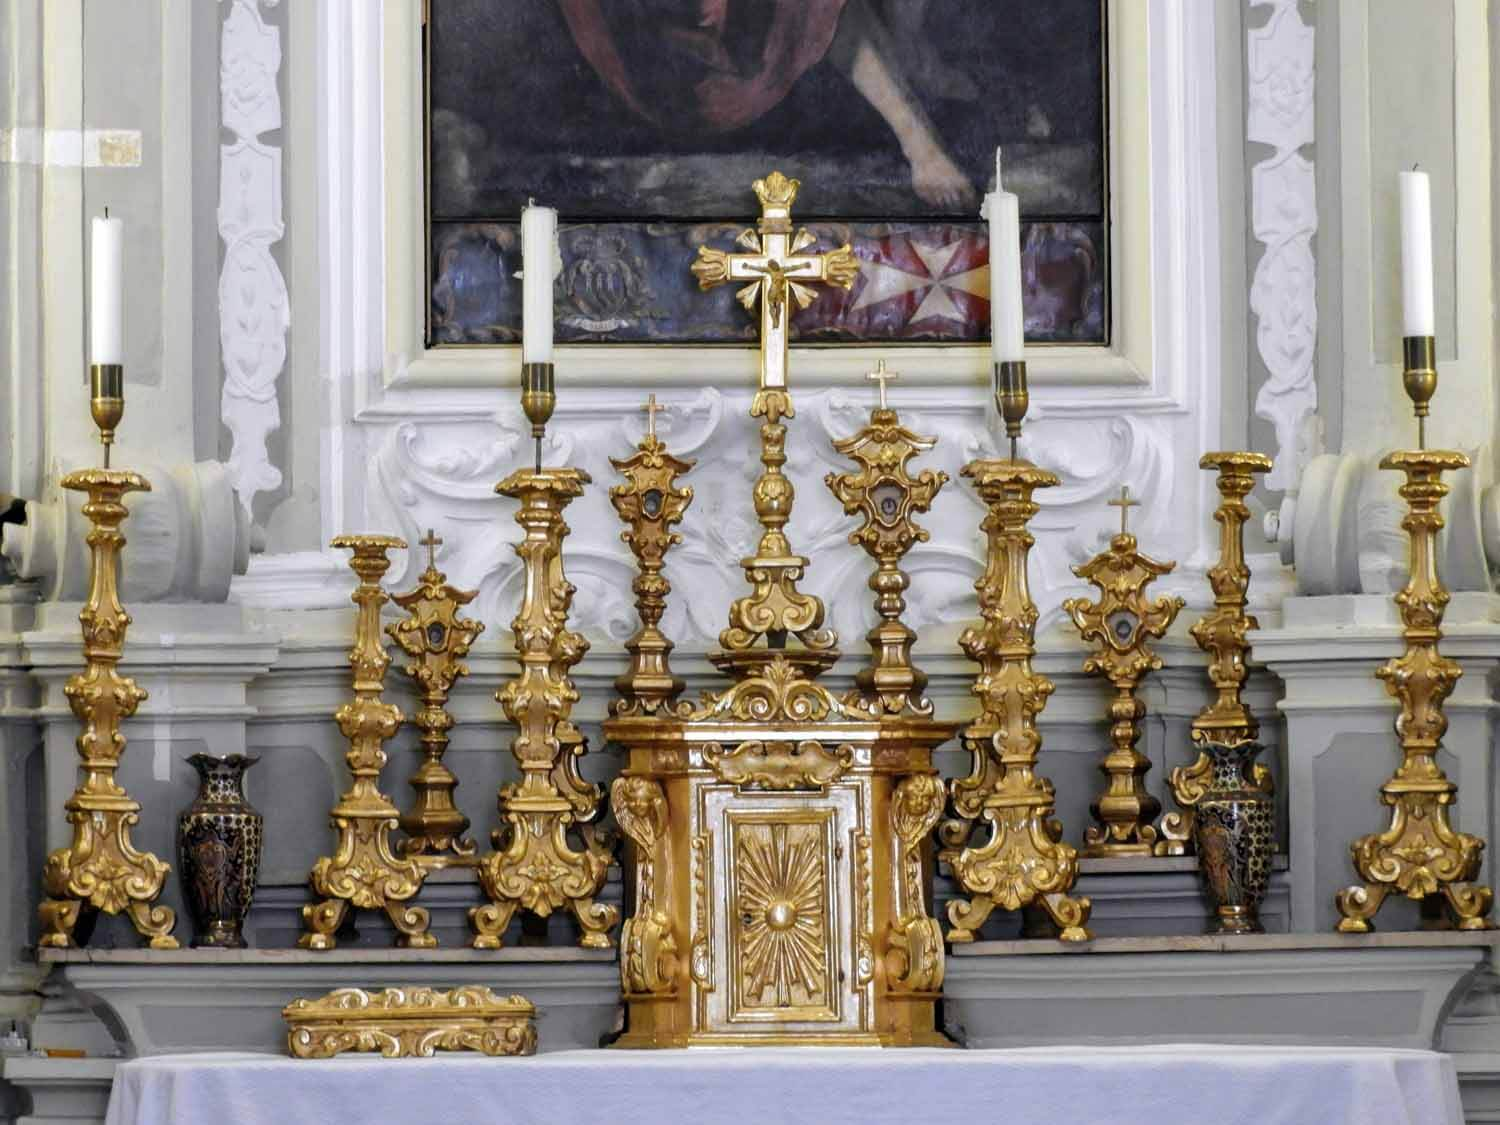 san-marino-micro-nation-basilica-national-interior-gold-candelsticks-cross-alter.jpg